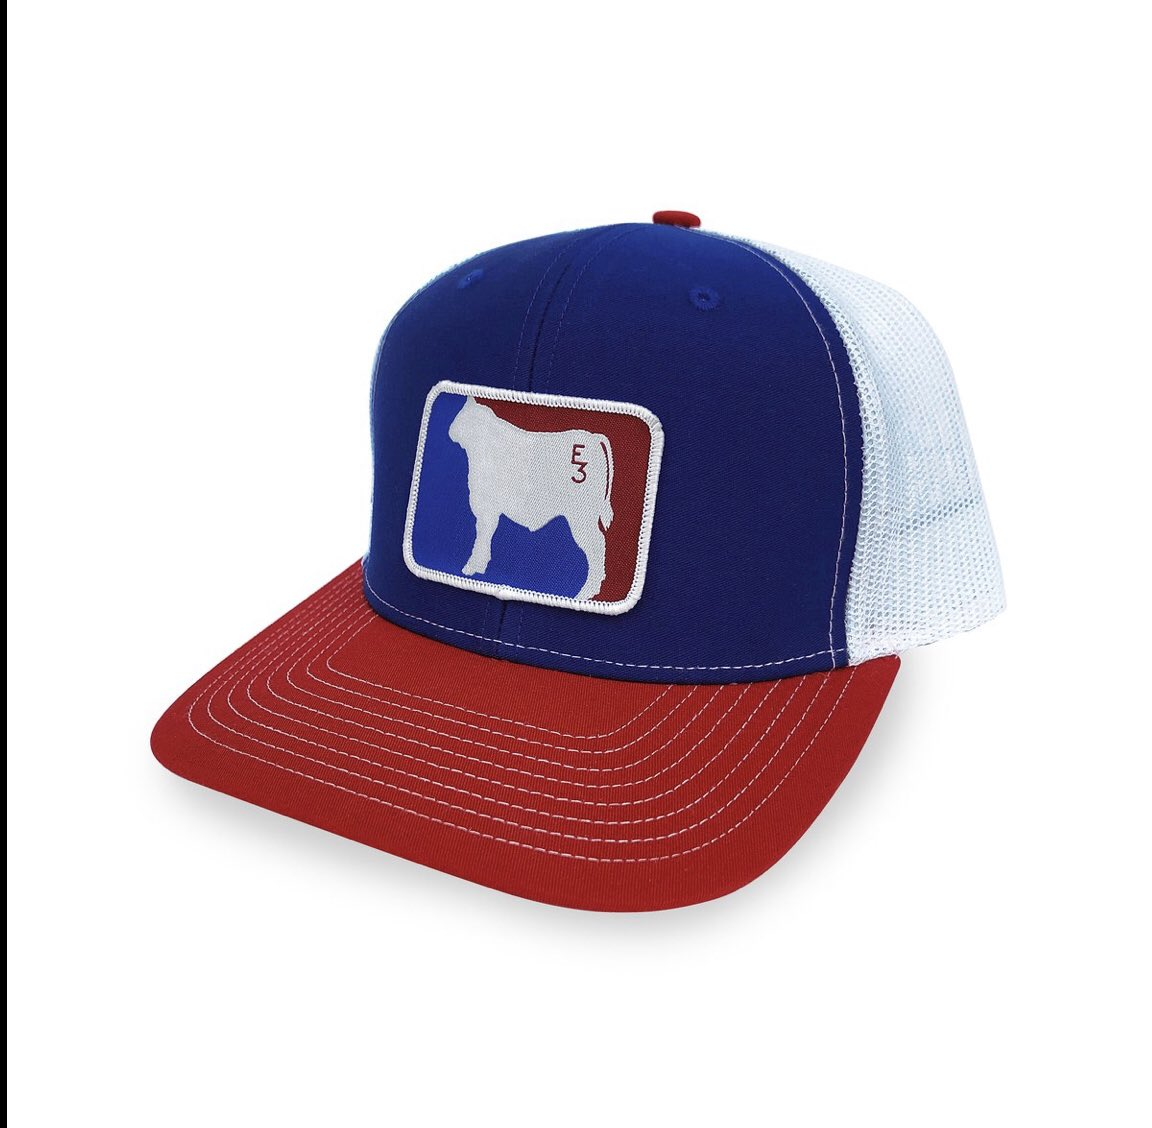 @E3Meat has added a new hat to our online collection in honor of @MLB #e3meatco